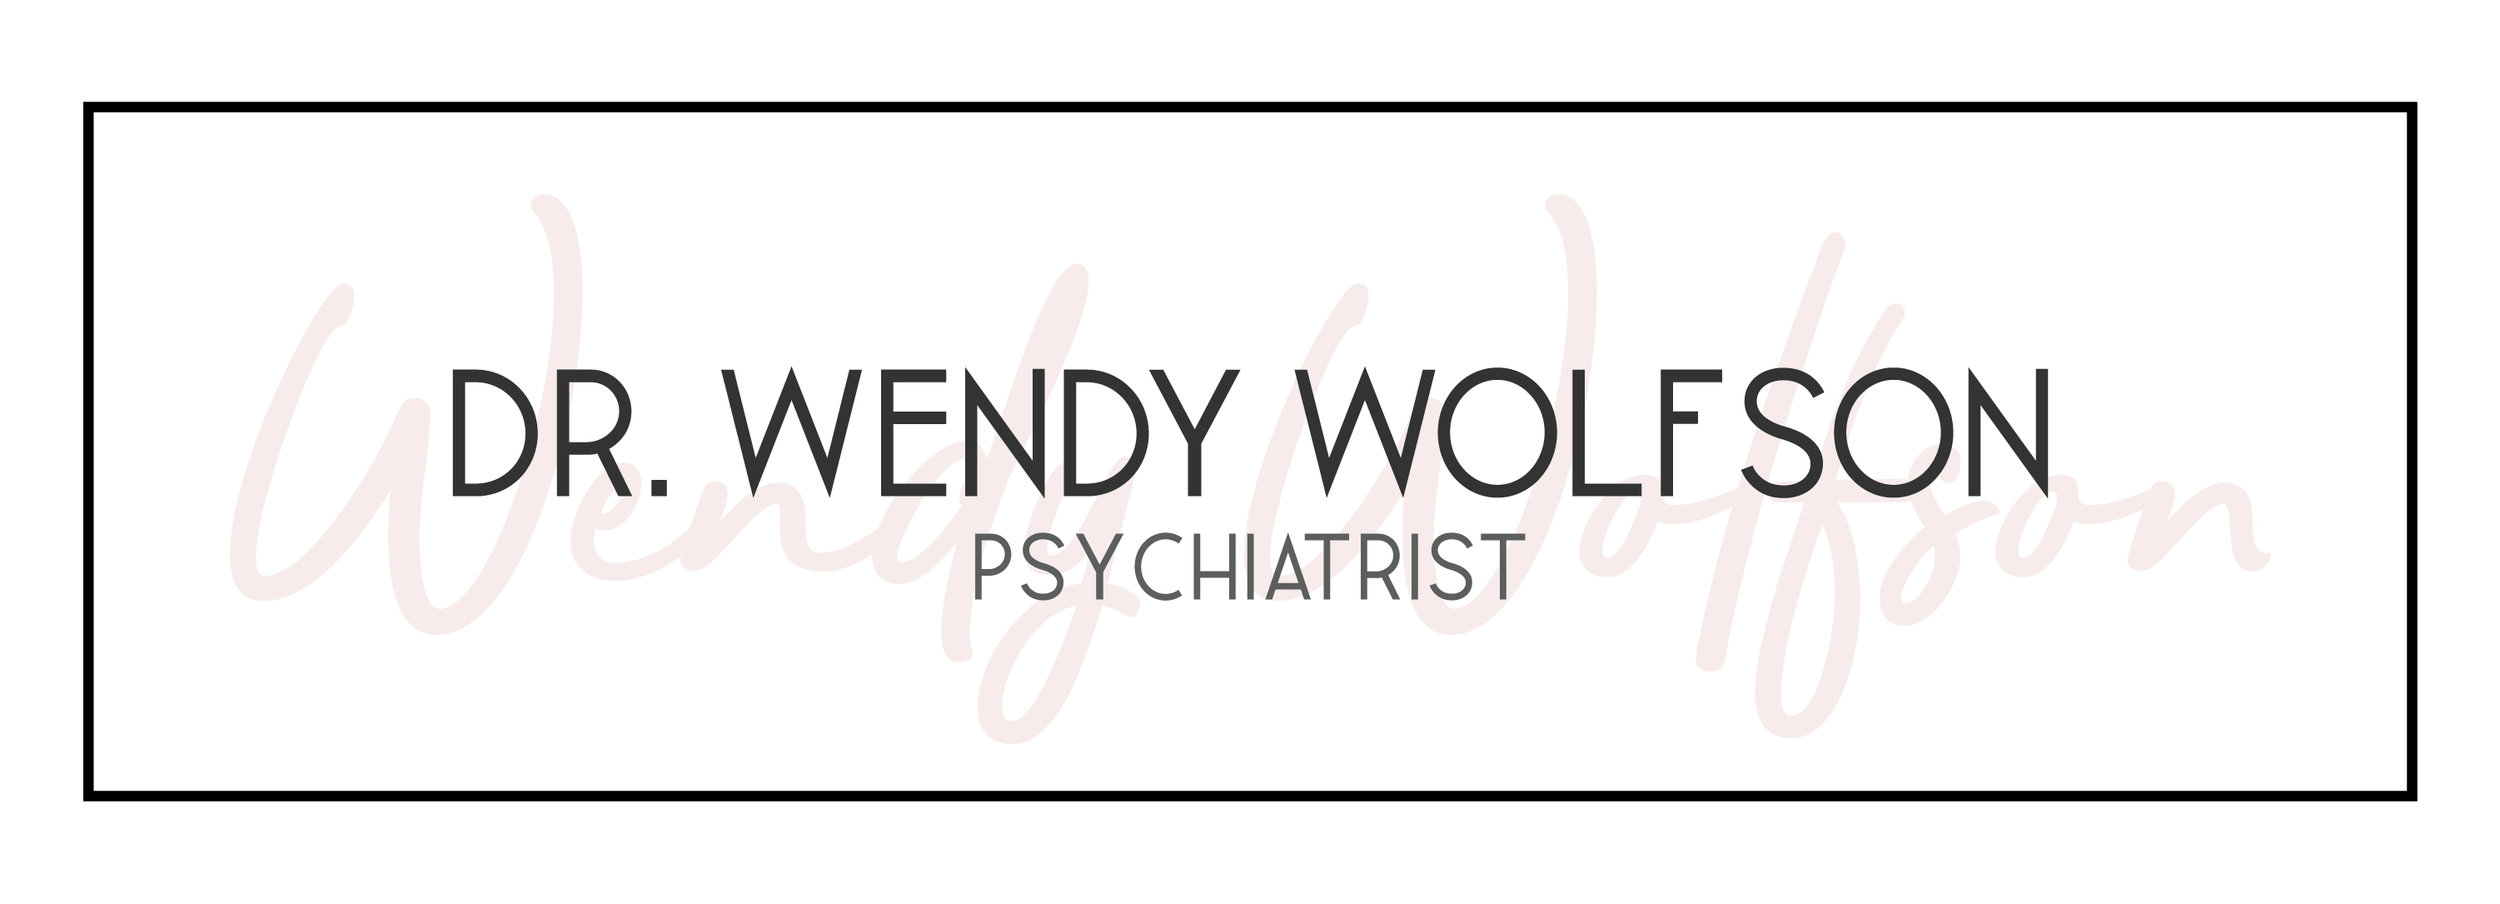 Dr. Wendy Wolfson | Tiffany Kuehl Designs  Everything about this logo speaks natural elegance to me. It's fun, peppy, but very simple in terms of color. This logo was so fun to design, and I love each and every element of it.  #branding #customlogo #logodesign #luxuriousbranding #custombranding #elegantbranding #phsychiatristlogo #pshychiatristbranding